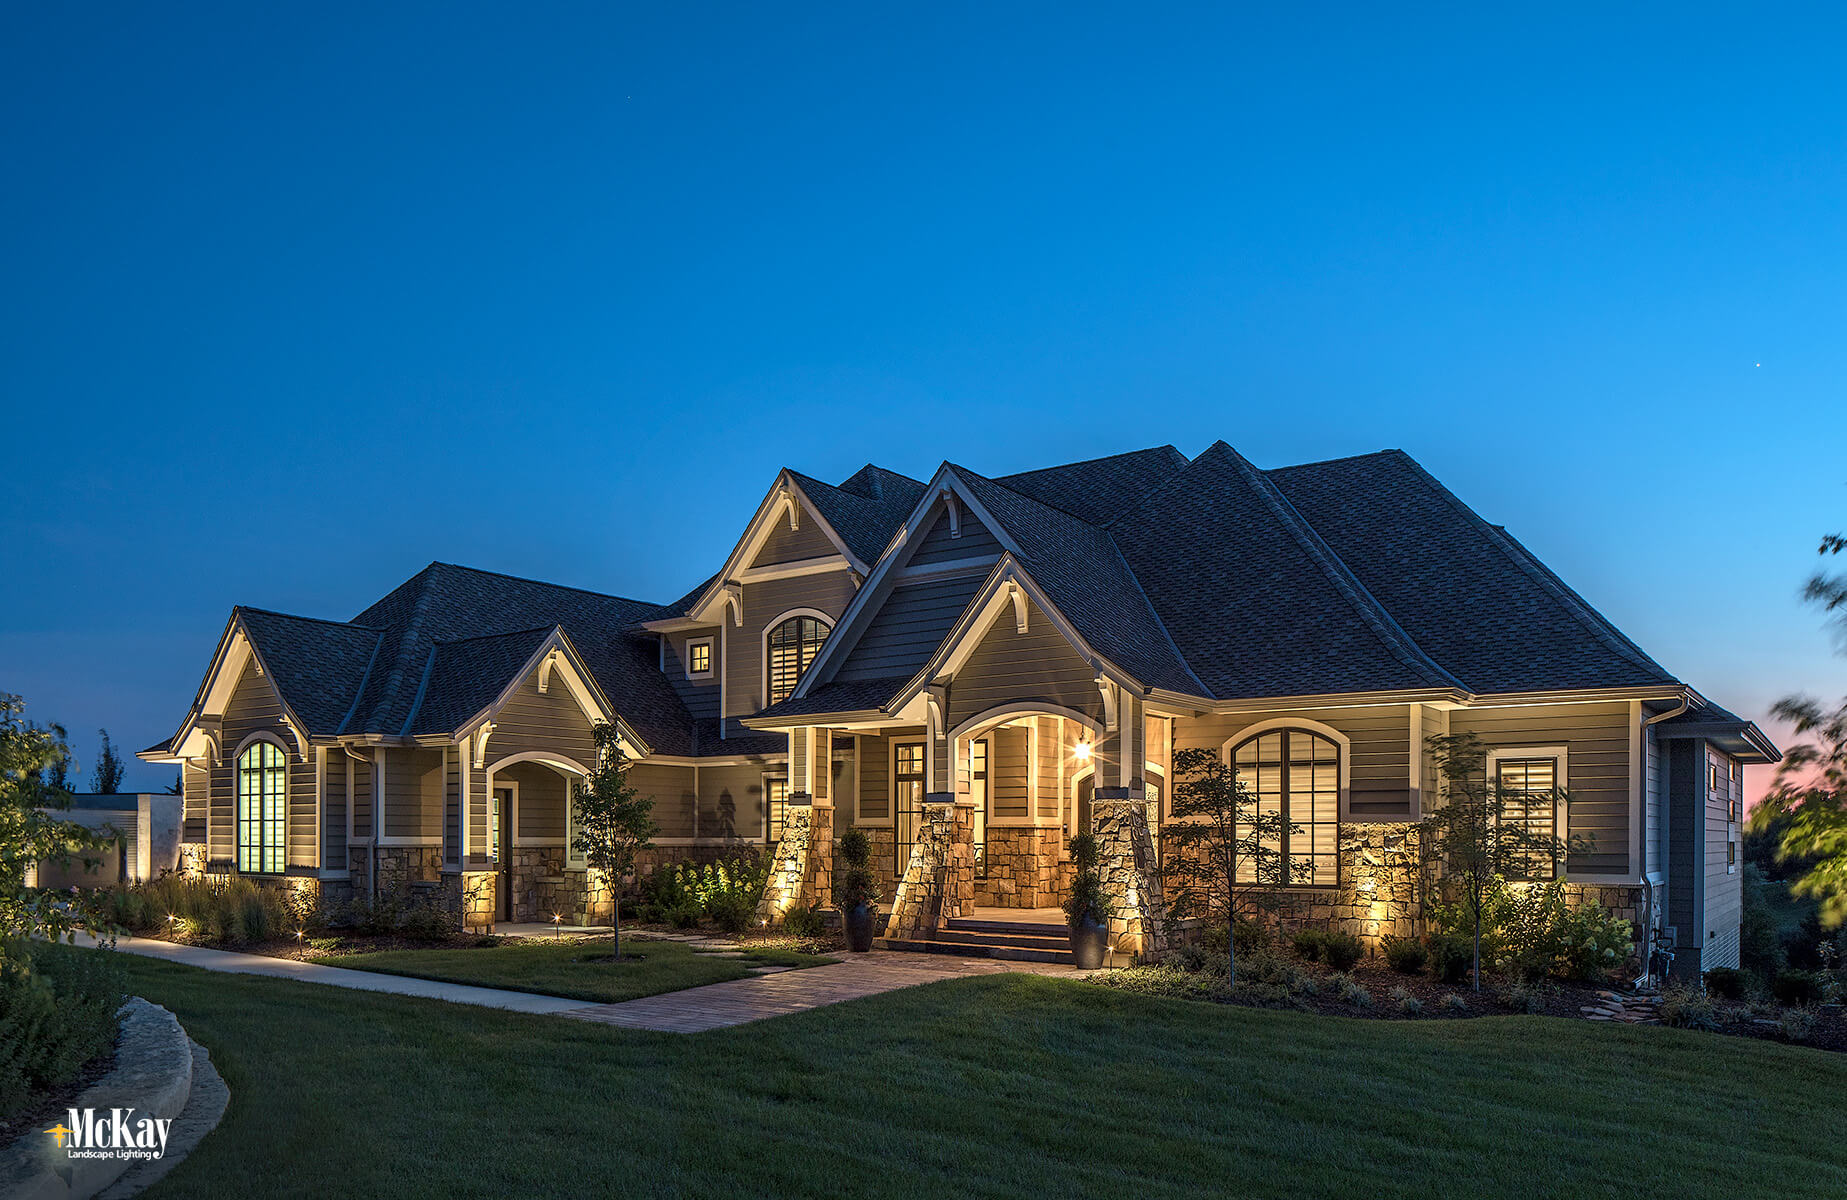 """""""We live in a remote area with very little light at night so adding landscape lighting really made a huge difference for us,"""" the homeowner said. """"It makes our home more welcoming and it just looks so beautiful when we come home in the evening..."""" Click to learn more 